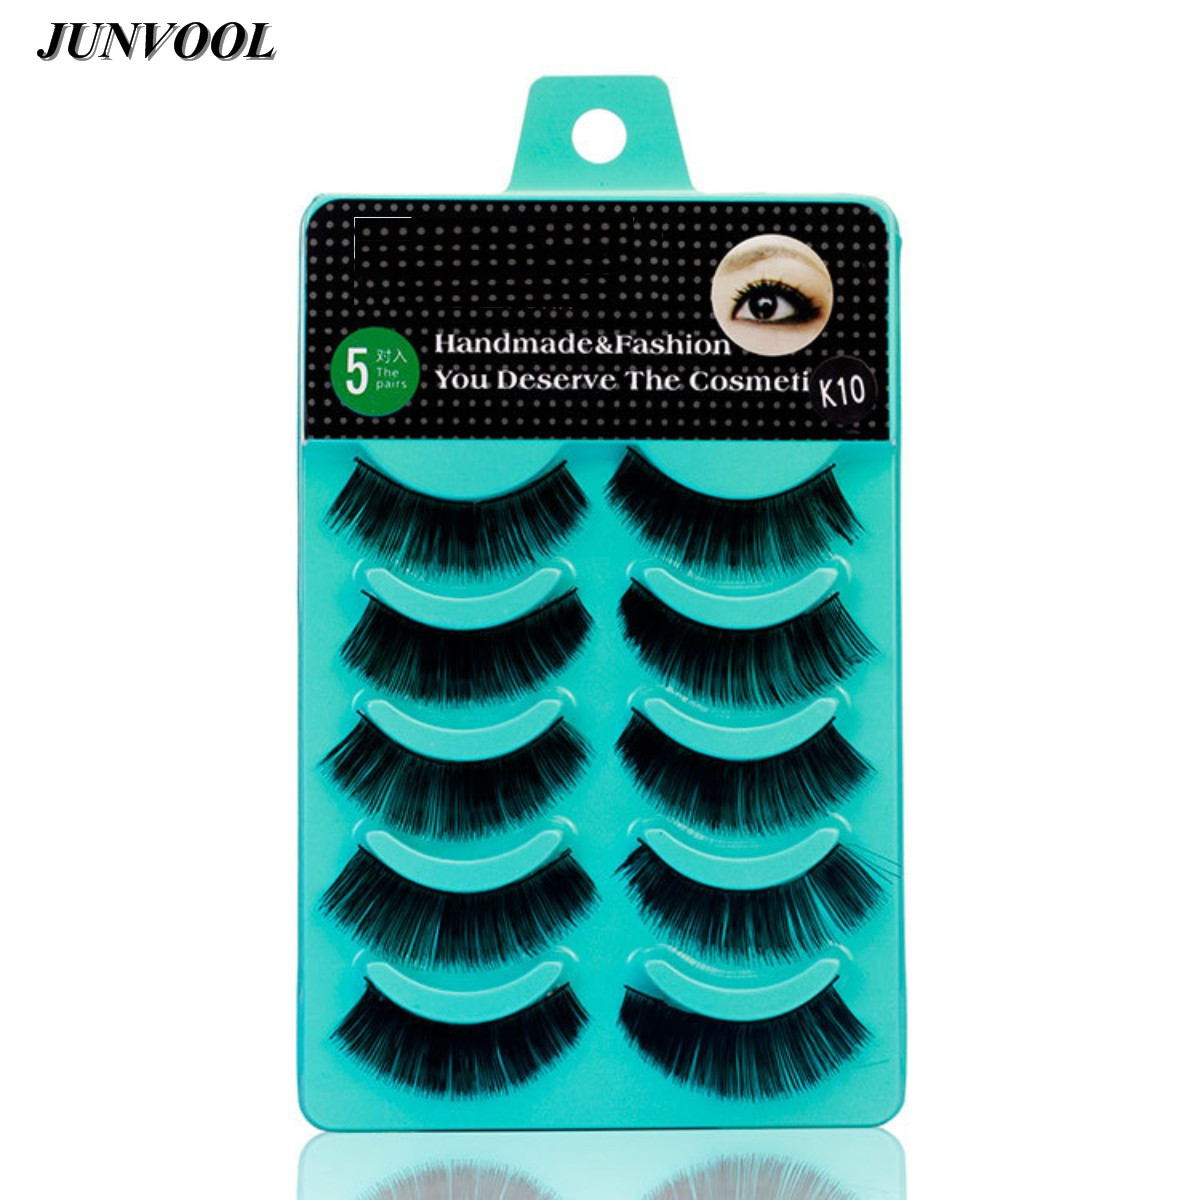 Cilios False Eyelashes Professional Thick Fake Lashes Nude Makeup Eyelashes Extentions 5pairs Per Pack With Model Show